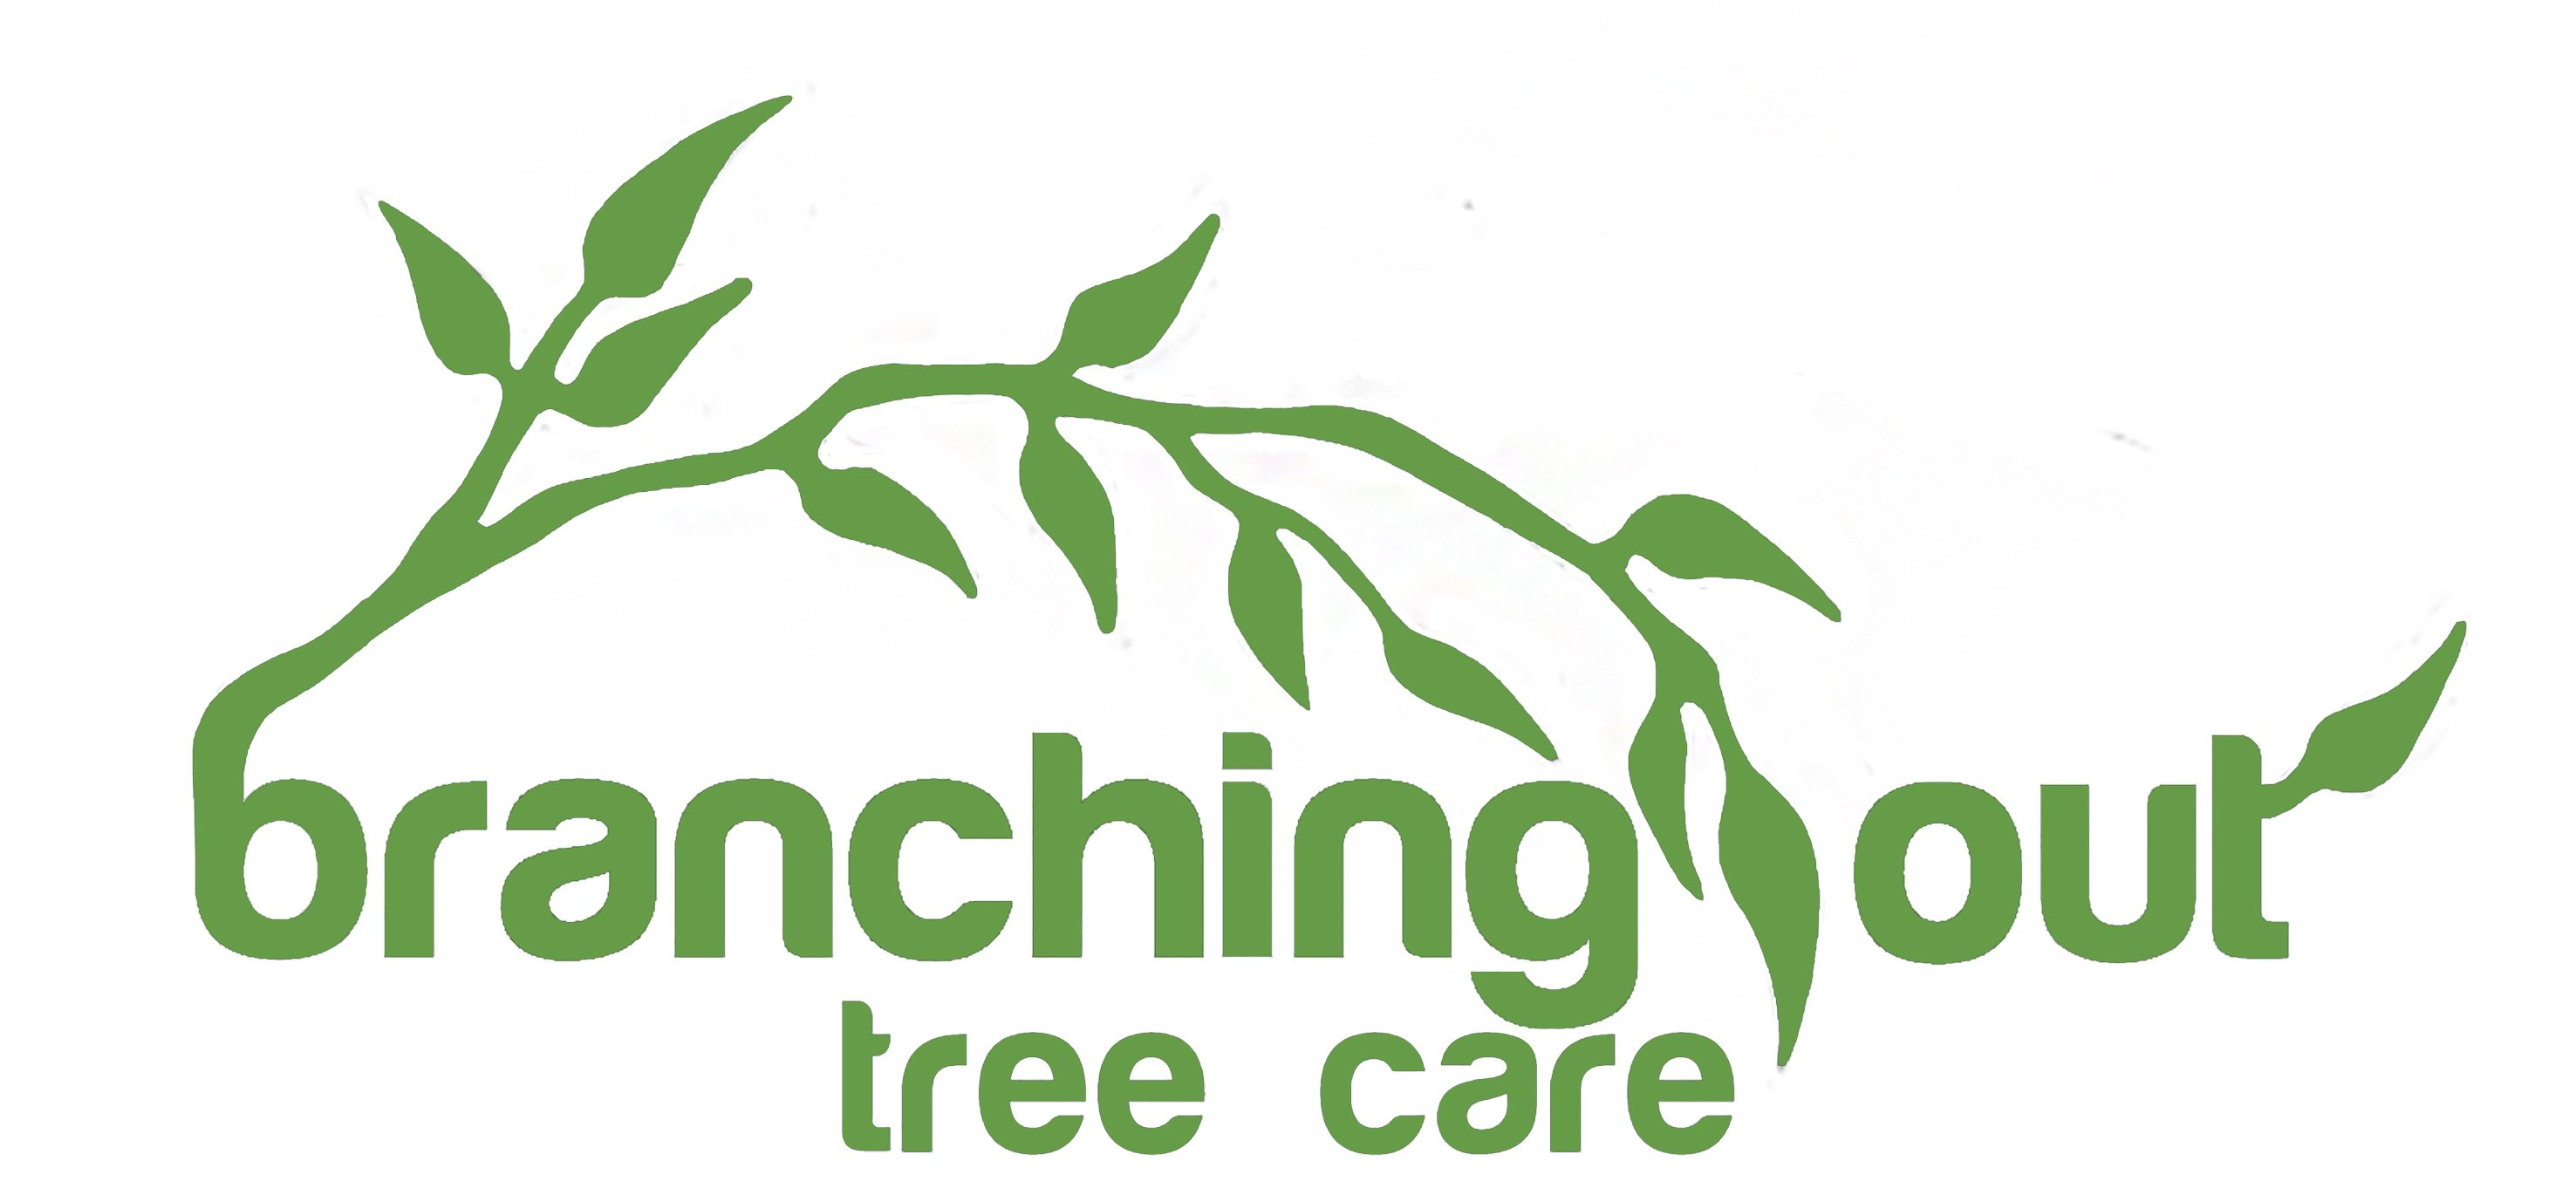 branching out logo green on white